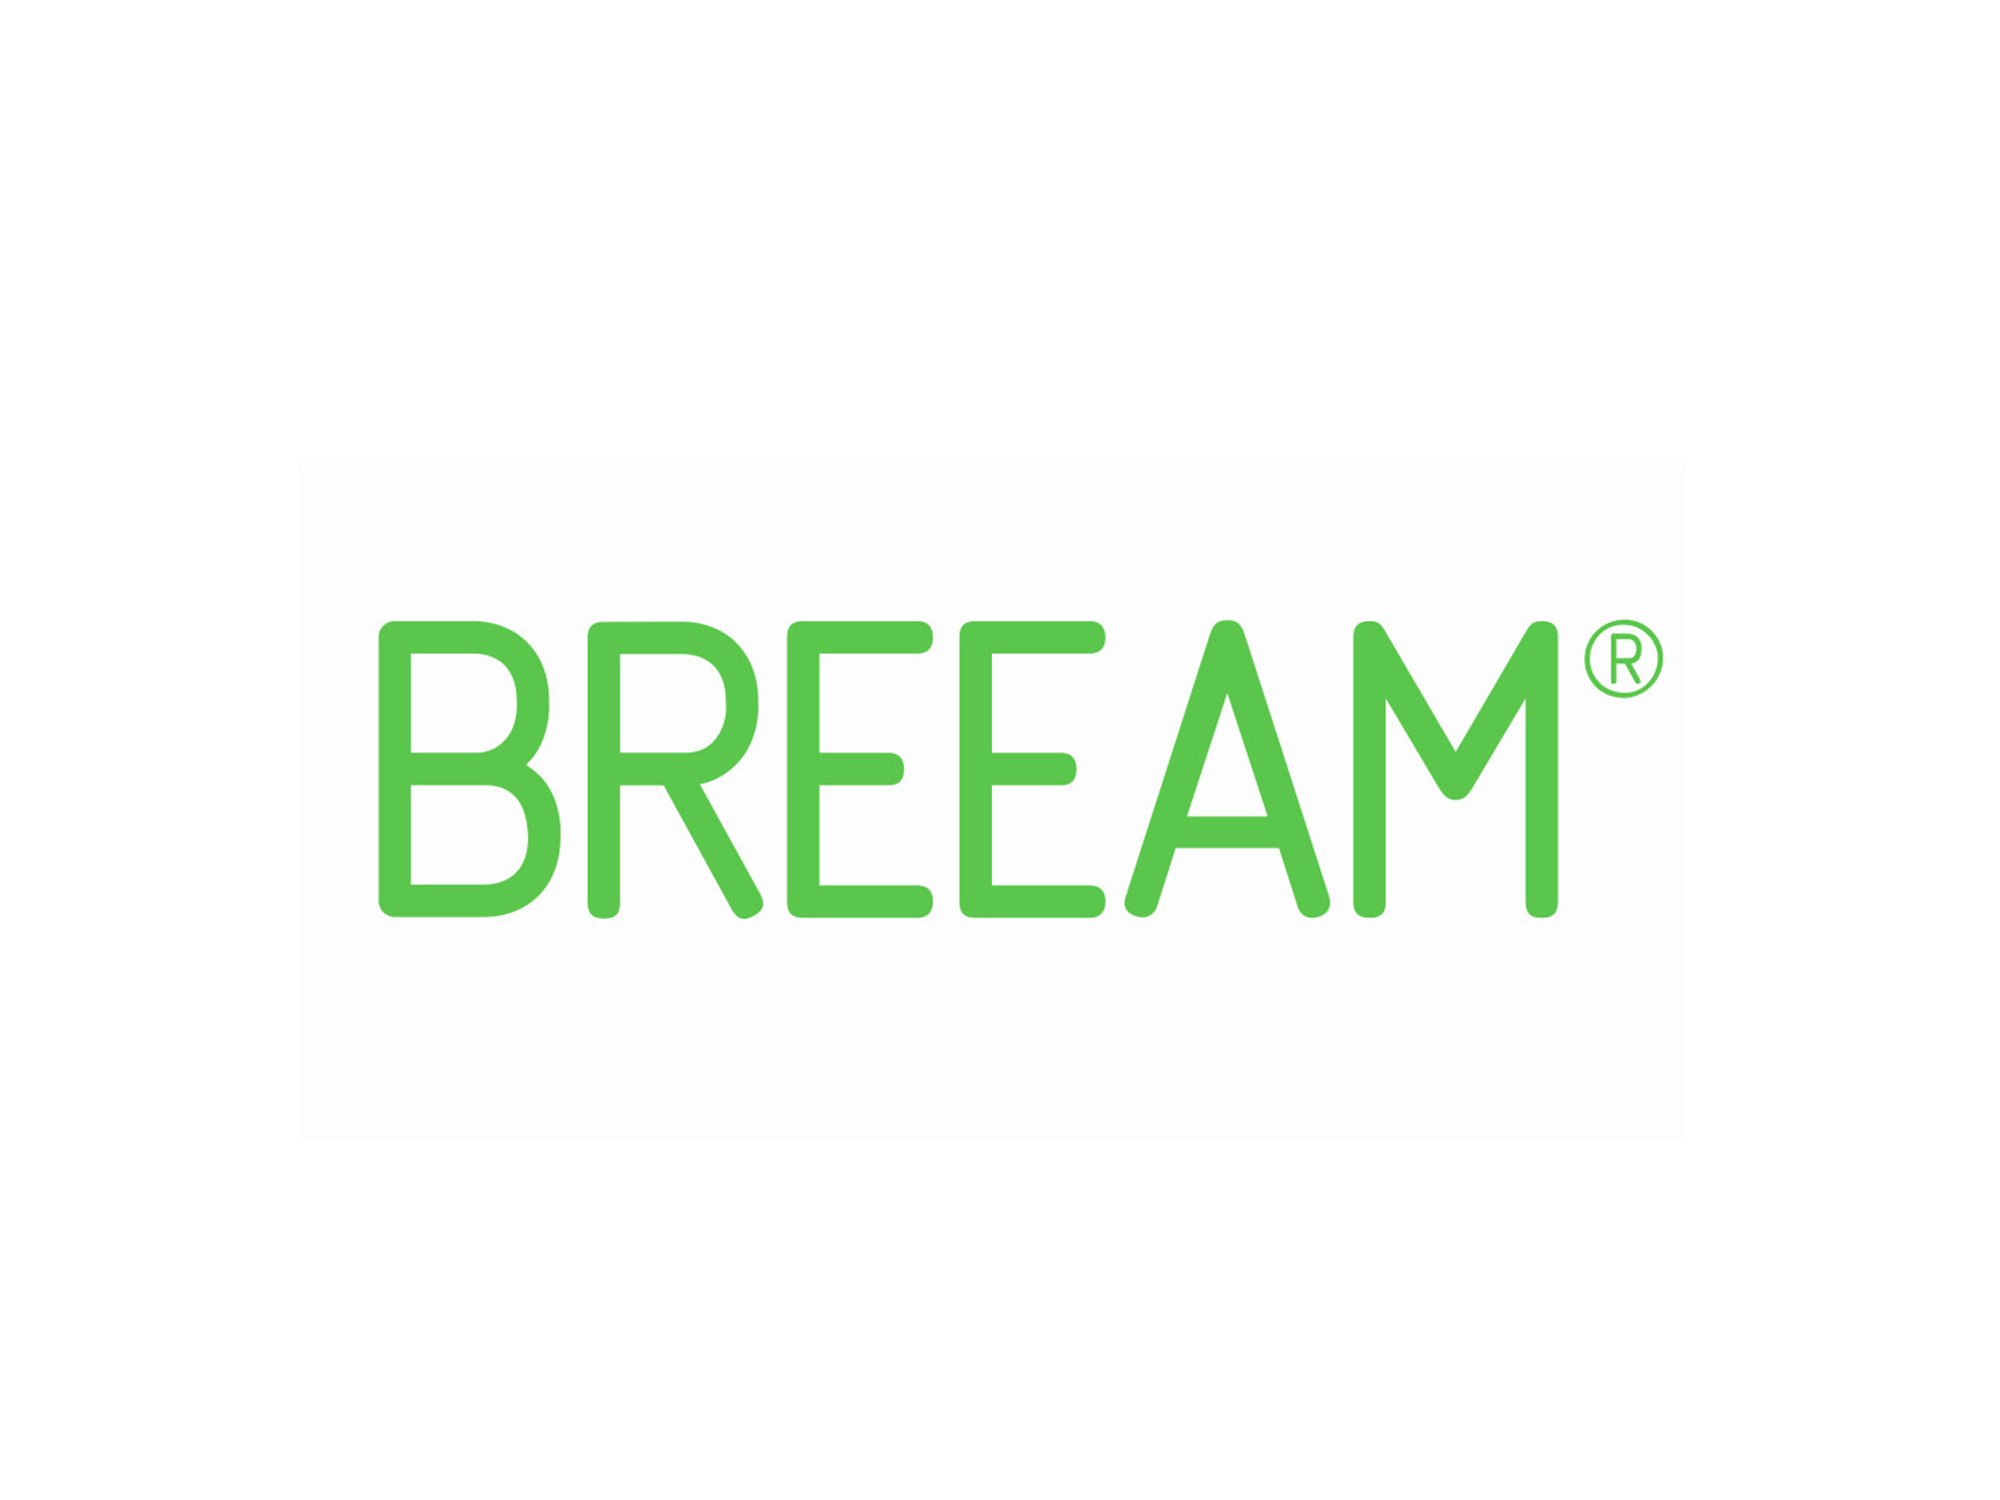 BREEAM (Building Research Establishment Environment)